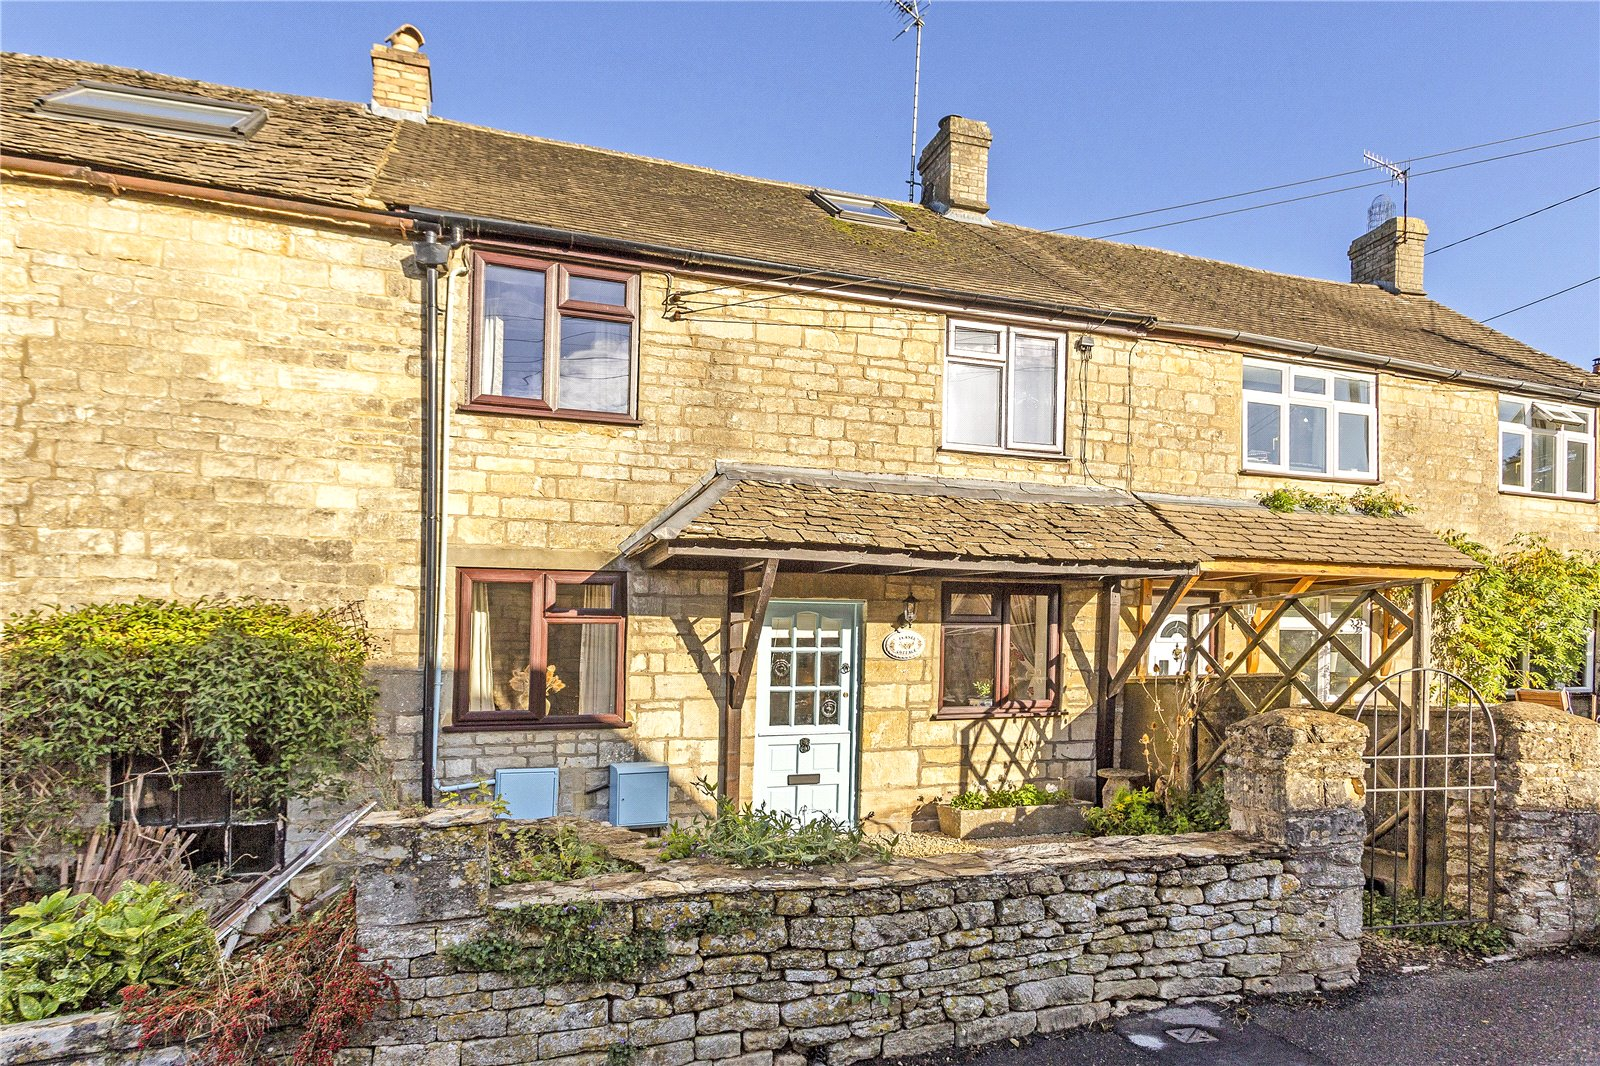 Commercial Road, Chalford Hill, Stroud, GL6